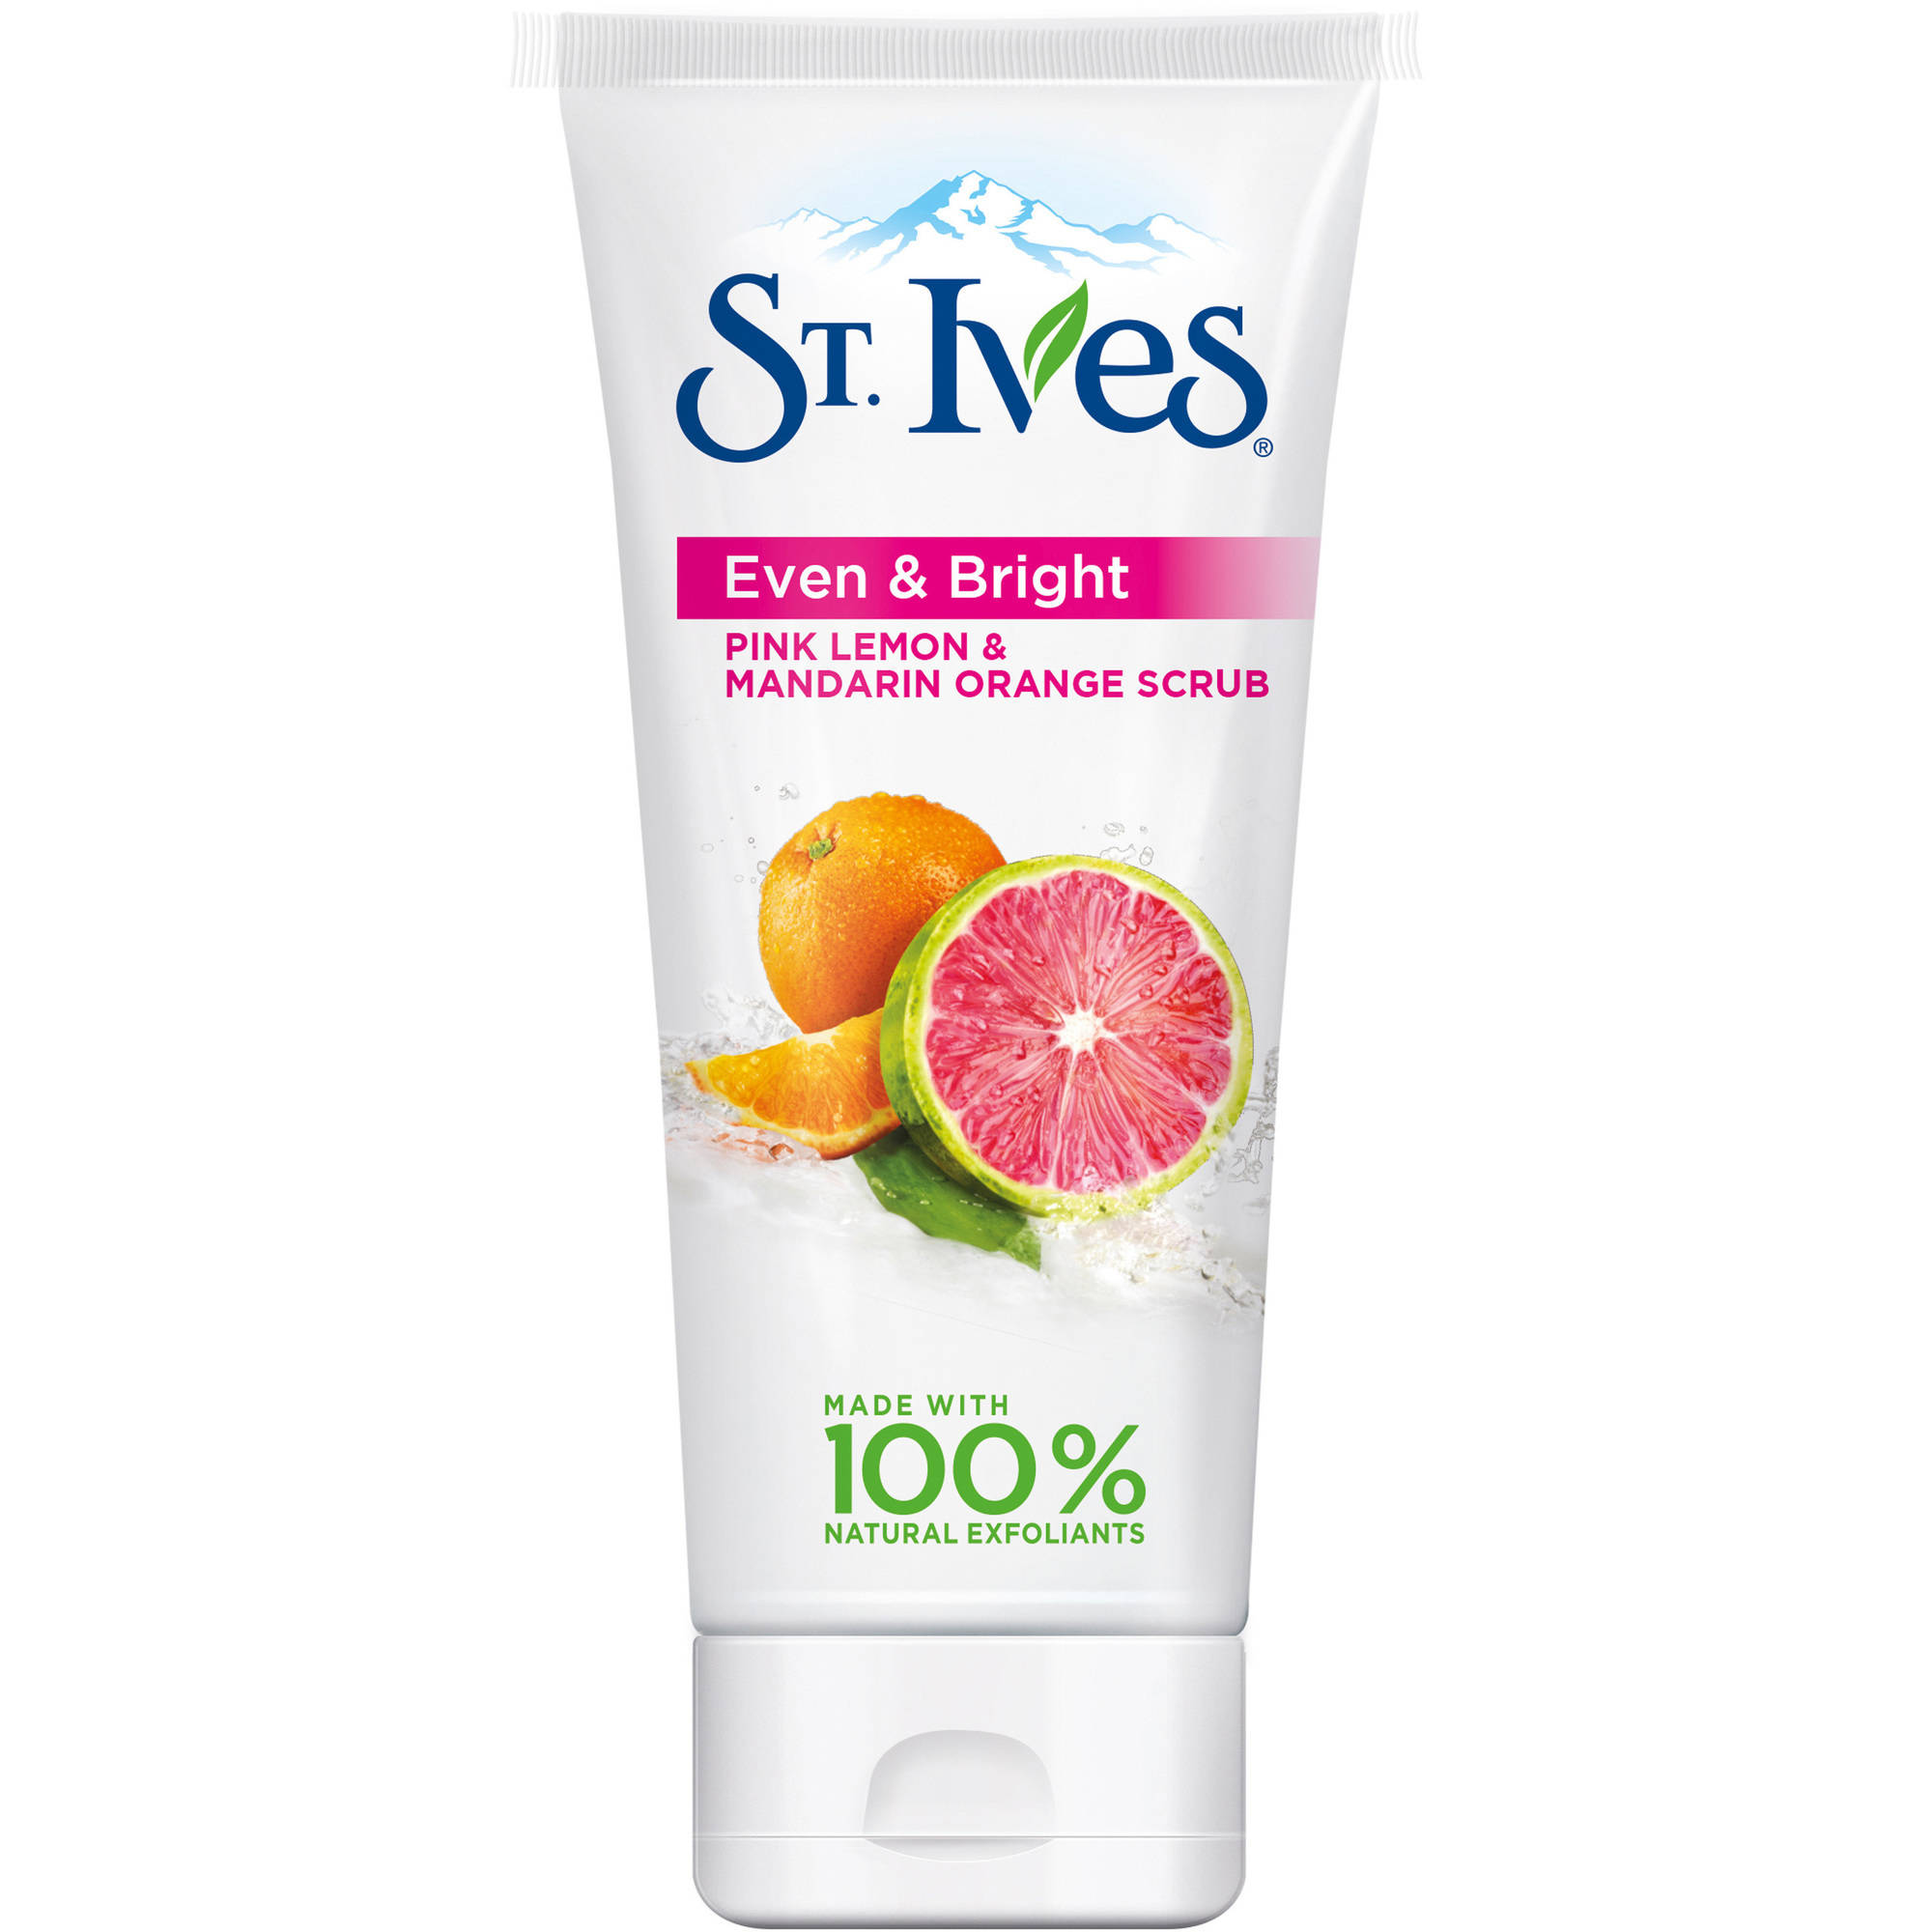 St. Ives Even & Bright Pink Lemon & Mandarin Orange Scrub, 6 oz